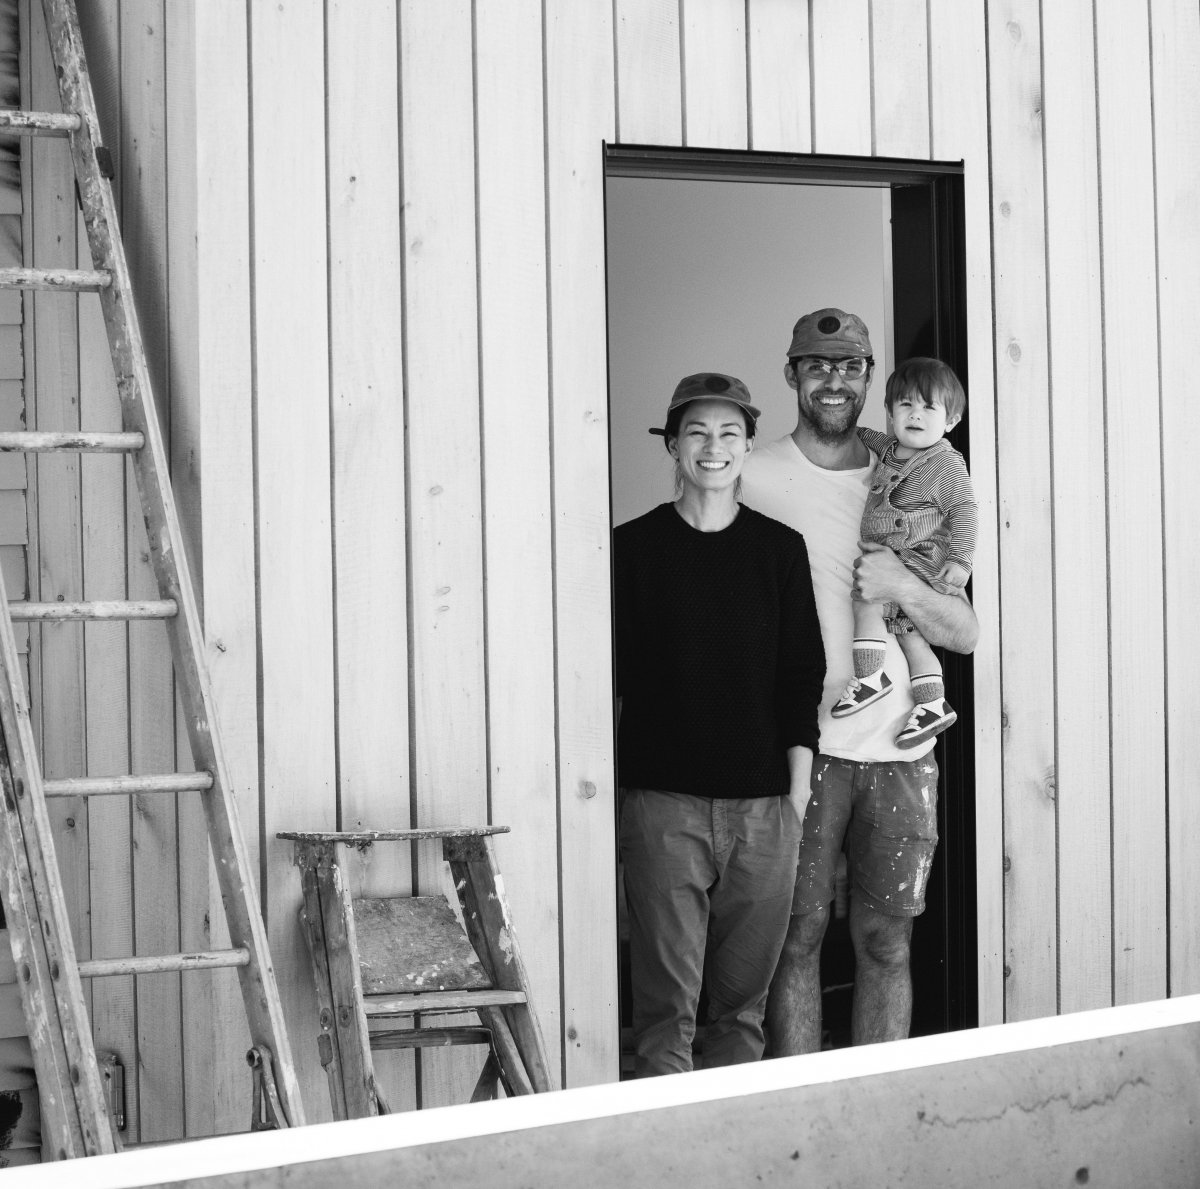 A picture of Rene Gauthier and his family to represent business lessons and fatherhood